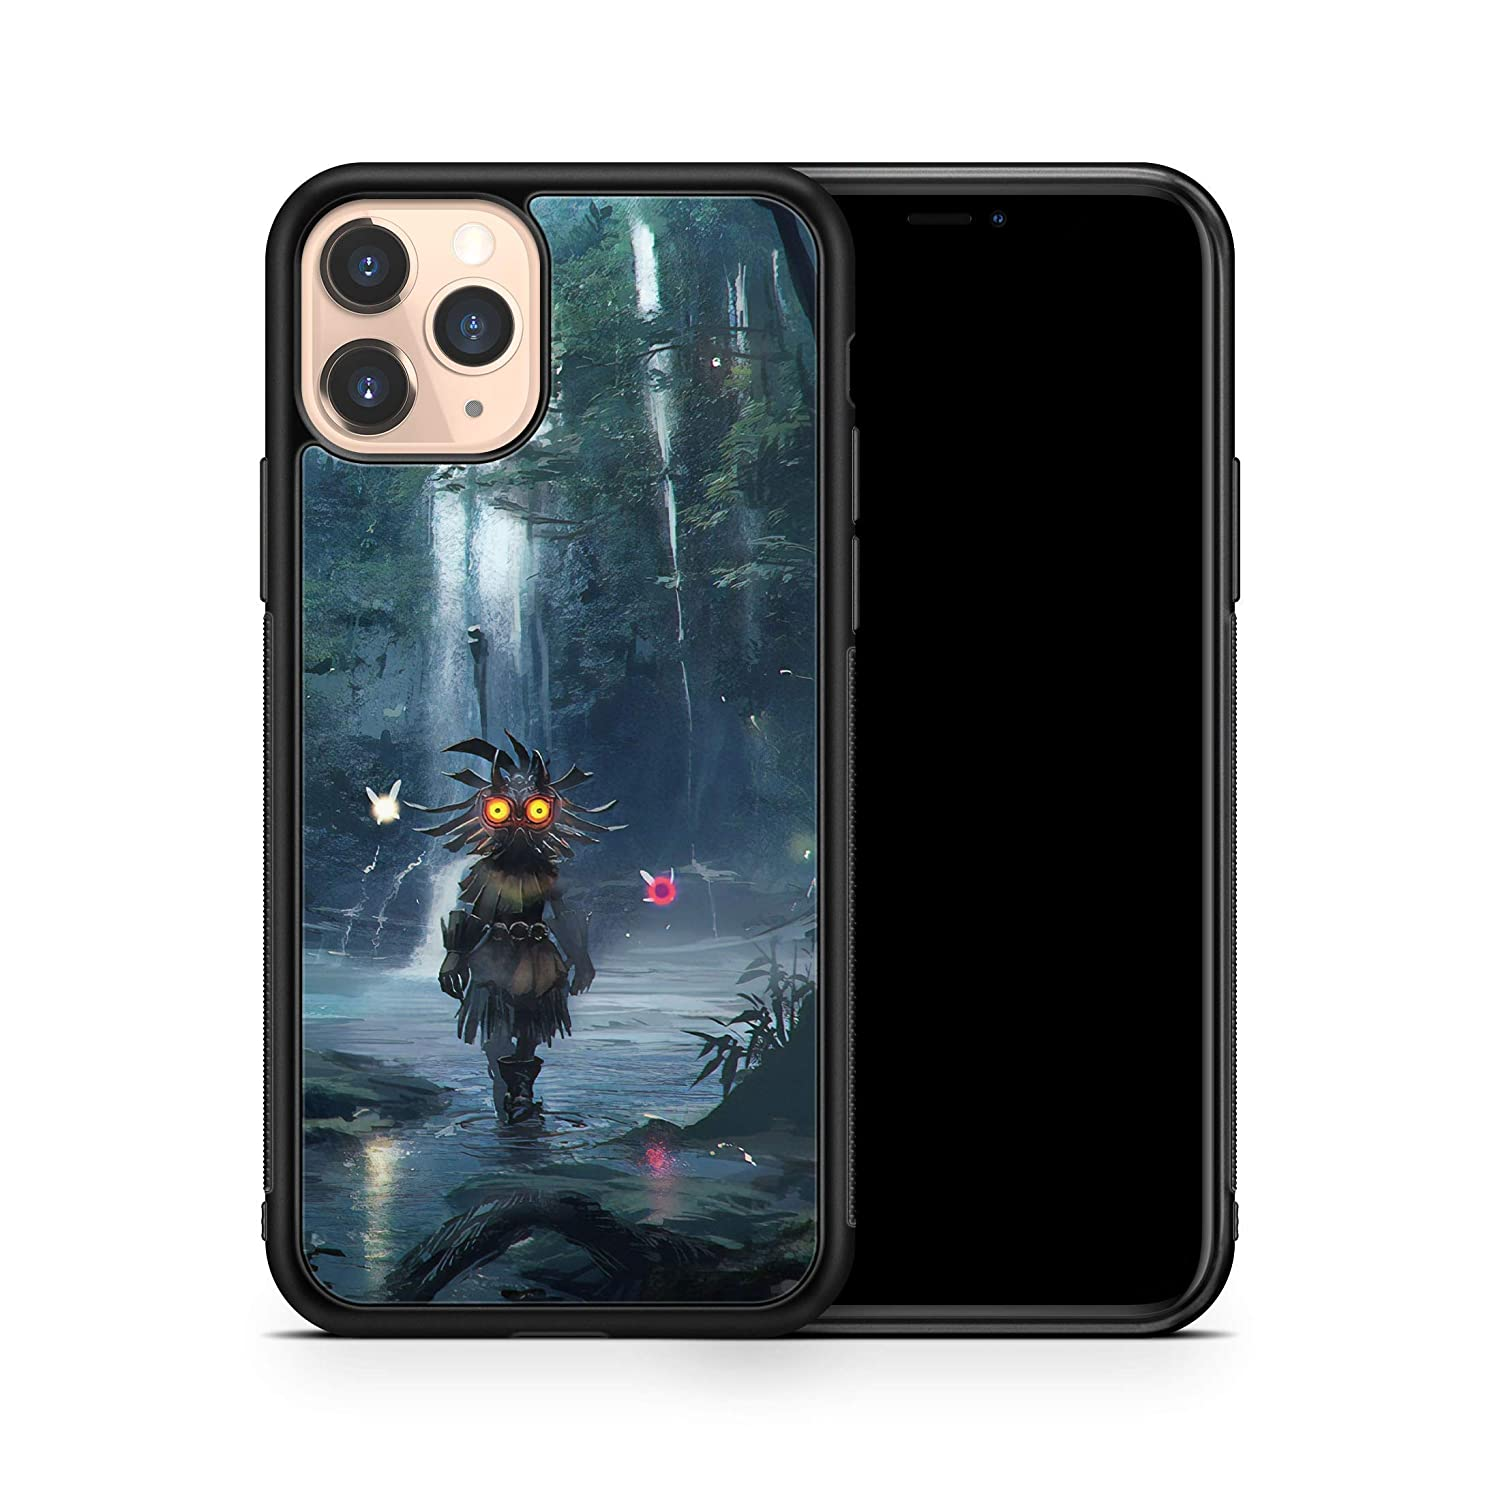 Albuquerque Easy-to-use Mall Inspired by Legend of Zelda Case For 10 Max iPhone 11 Pro Xs